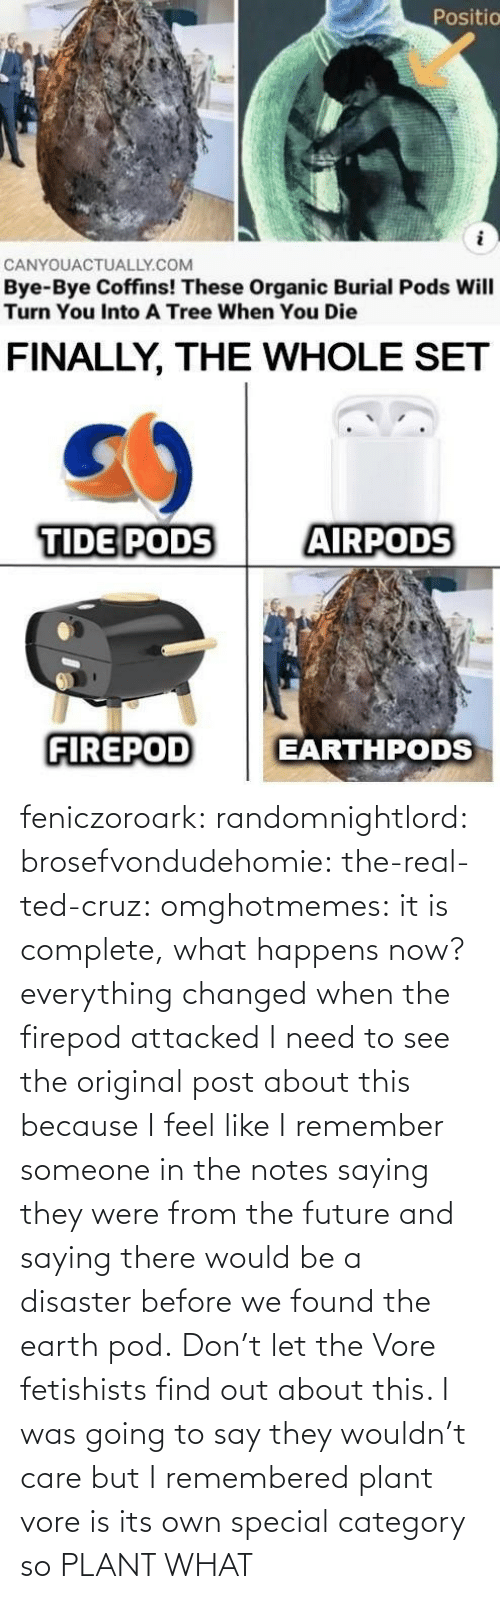 Ted: feniczoroark:  randomnightlord:  brosefvondudehomie: the-real-ted-cruz:  omghotmemes: it is complete, what happens now? everything changed when the firepod attacked    I need to see the original post about this because I feel like I remember someone in the notes saying they were from the future and saying there would be a disaster before we found the earth pod.    Don't let the Vore fetishists find out about this.    I was going to say they wouldn't care but I remembered plant vore is its own special category so   PLANT WHAT